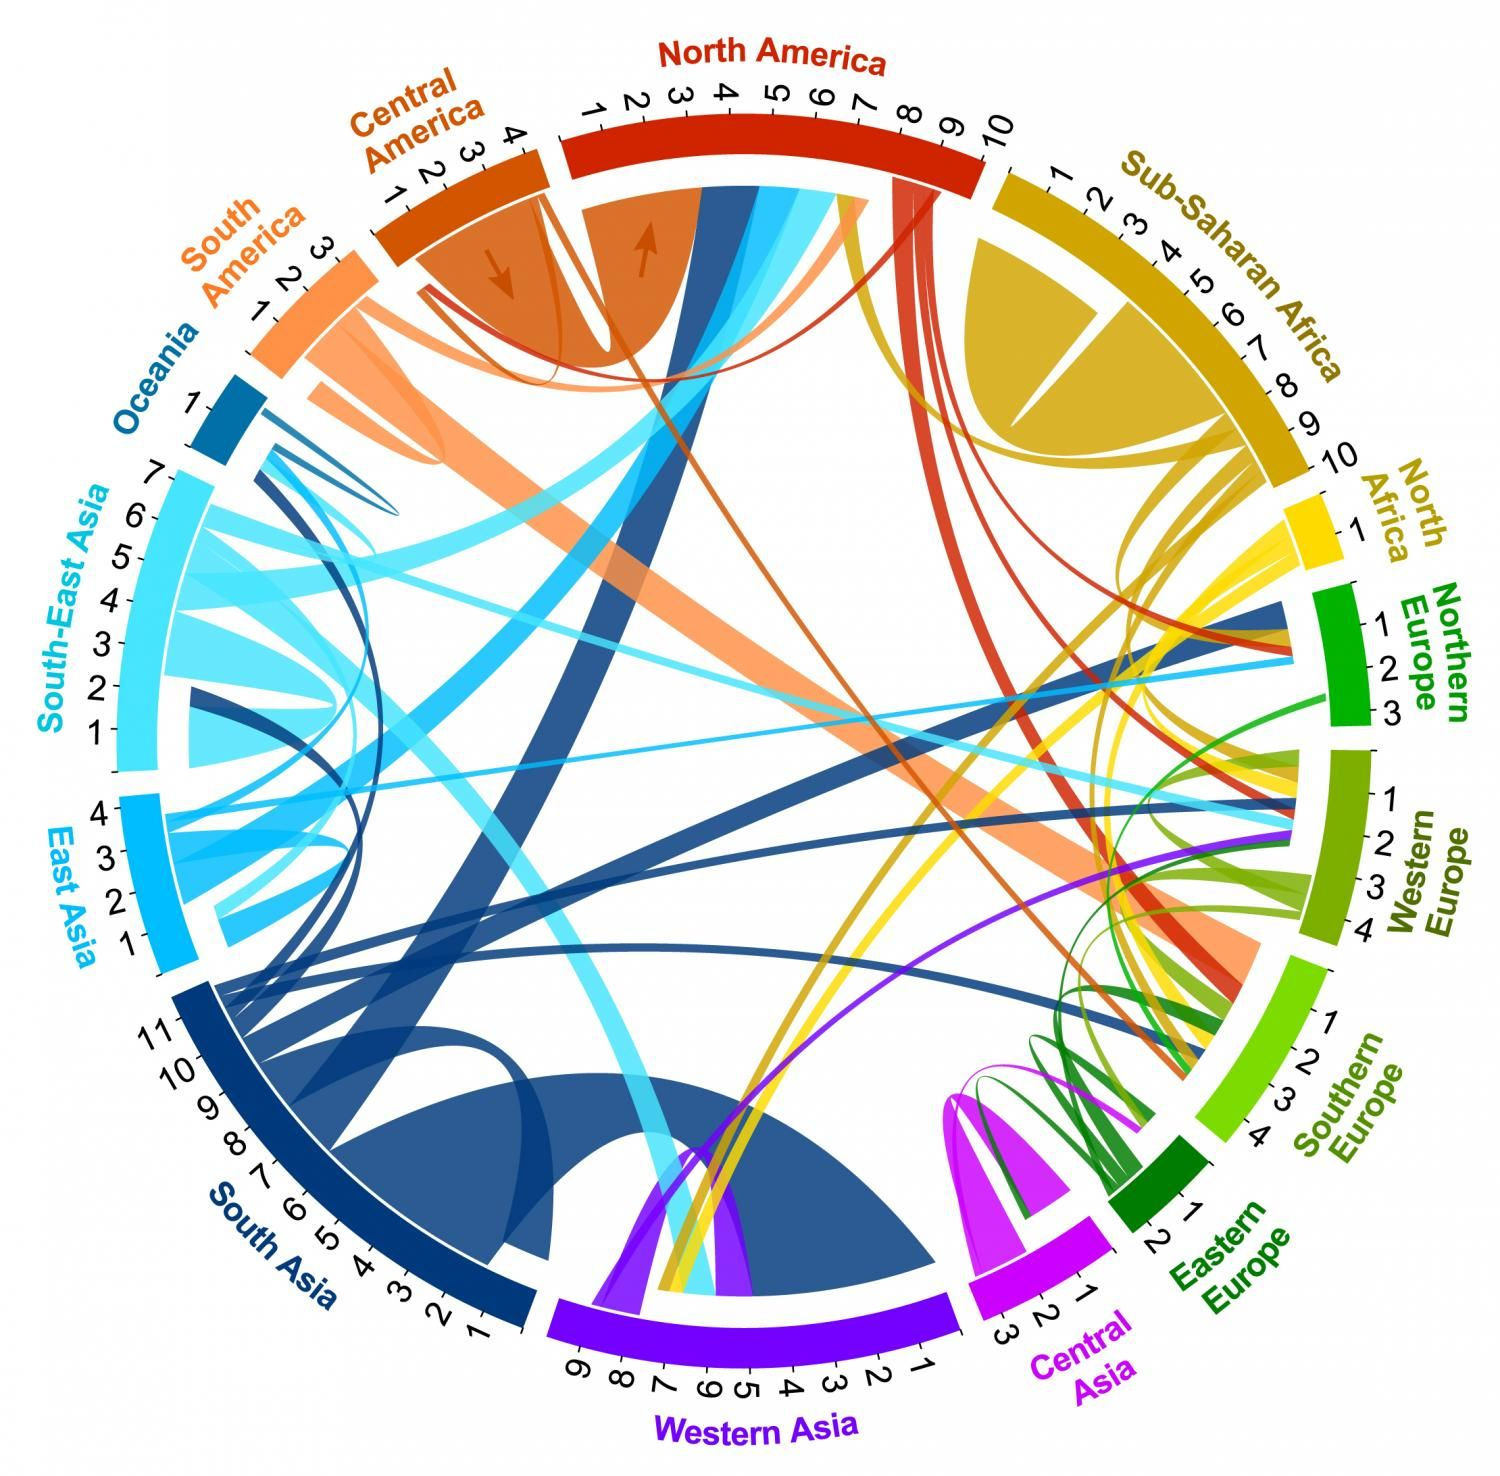 Circular plot of migration flows between and within world regions circular plot of migration flows between and within world regions during 2005 to 2010 tick nvjuhfo Image collections